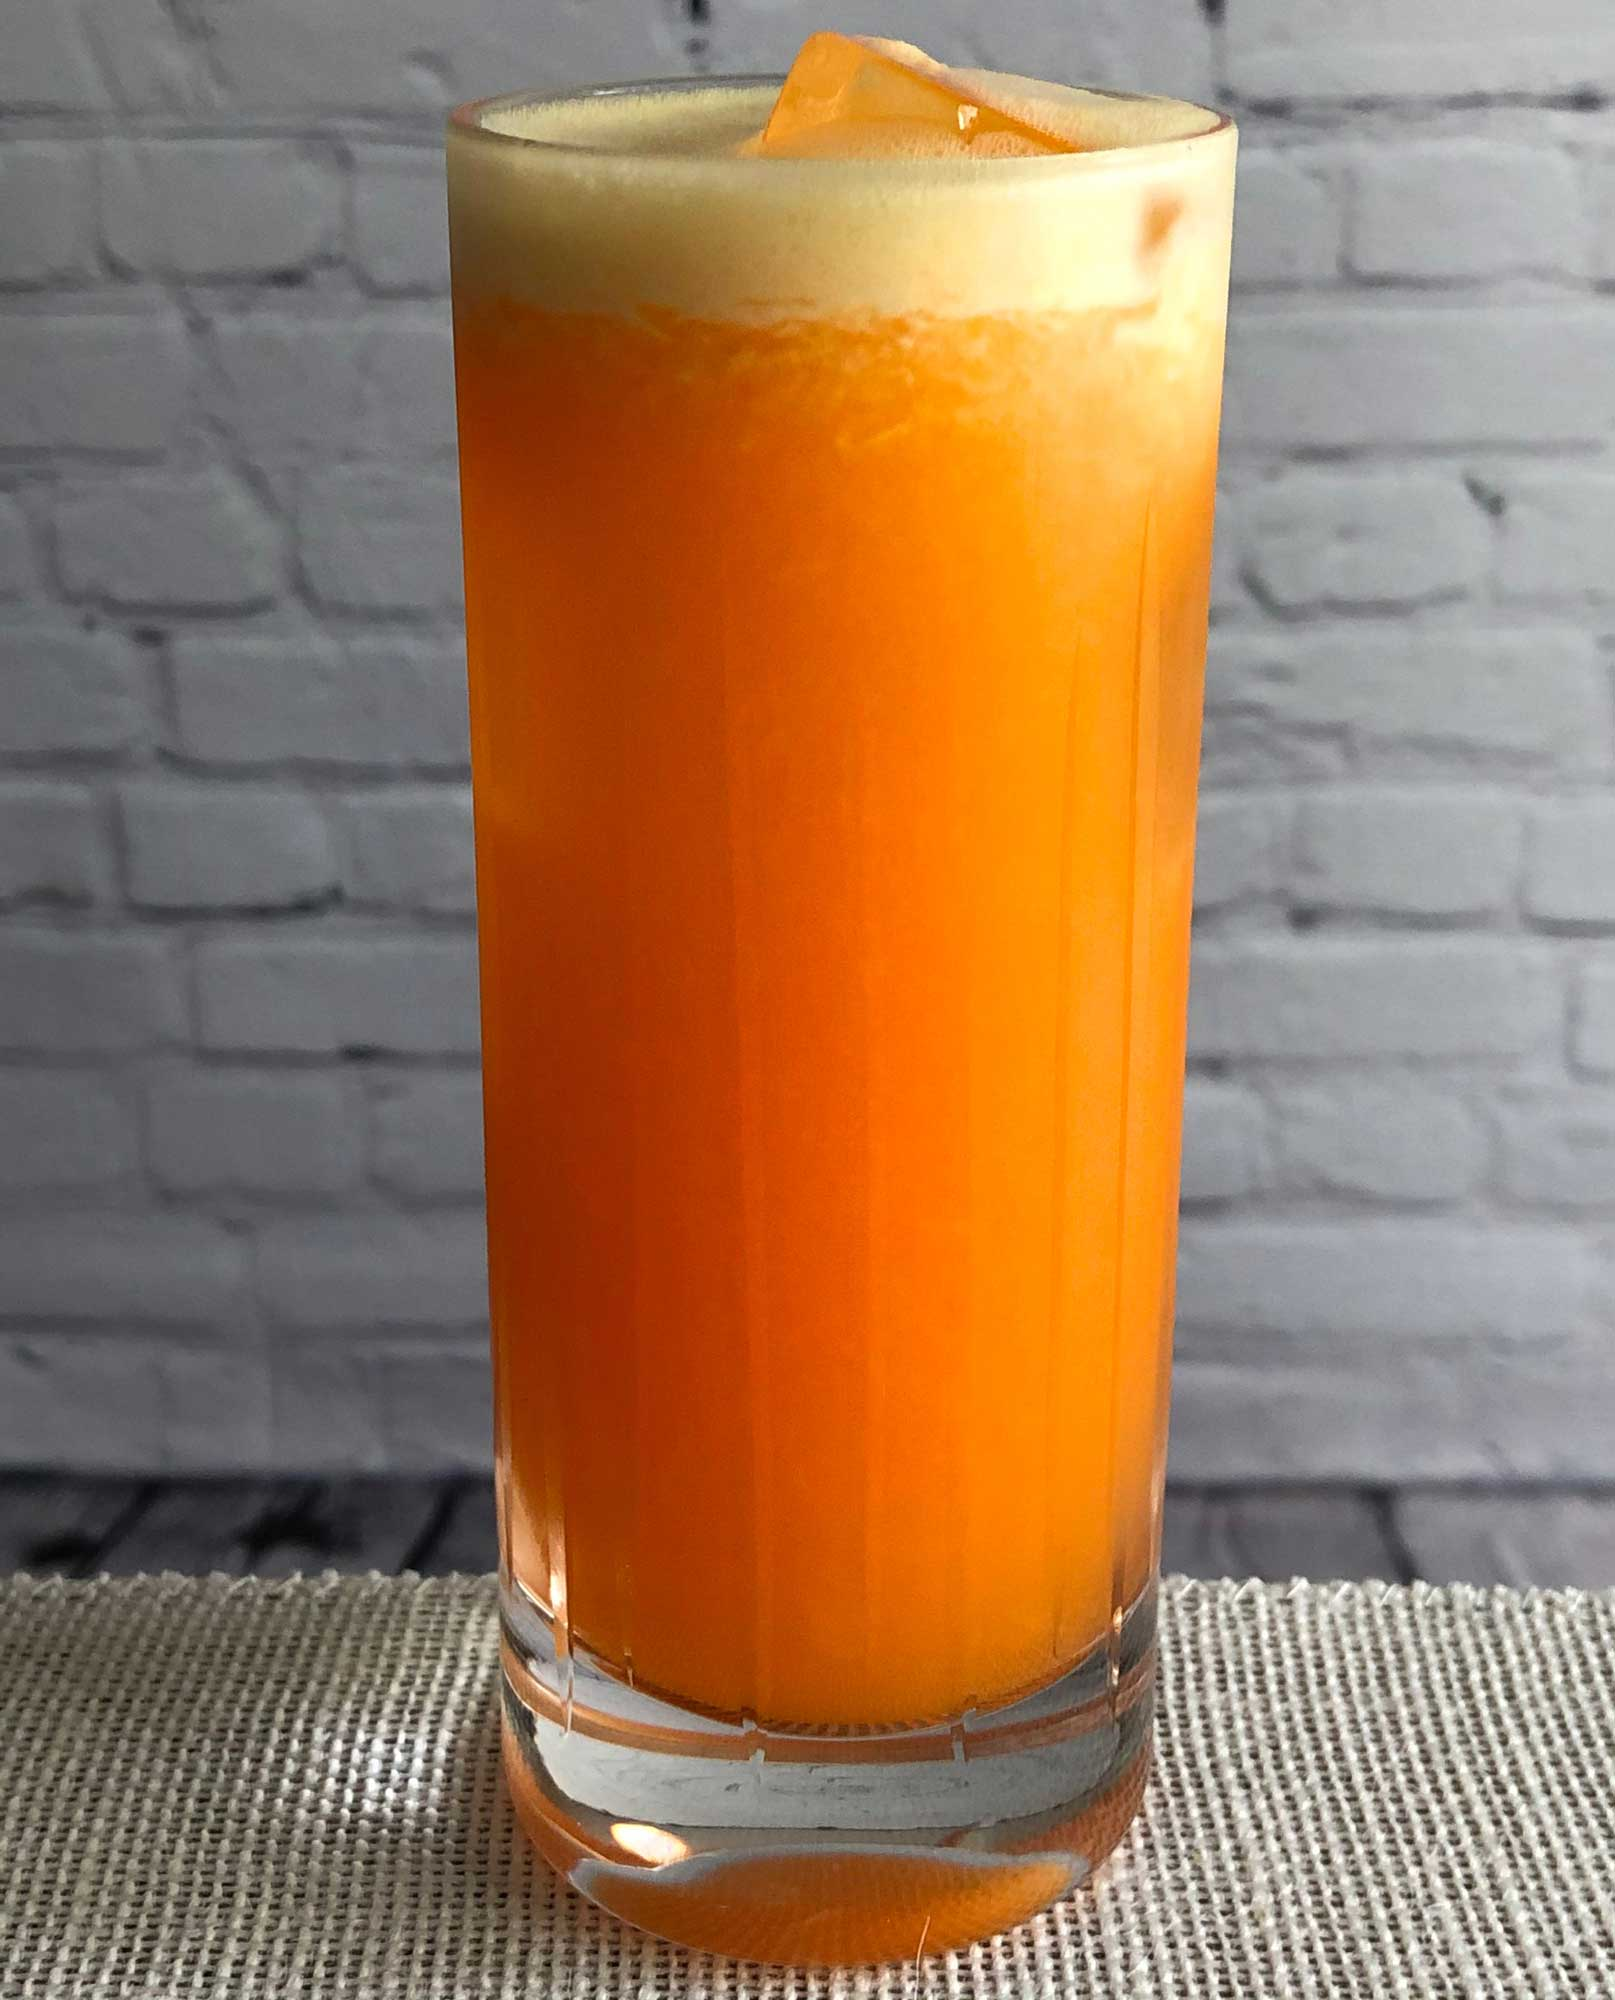 An example of the The Maddalena, the mixed drink (cocktail) featuring orange juice, grapefruit juice, and Aperitivo Cappelletti; photo by Lee Edwards